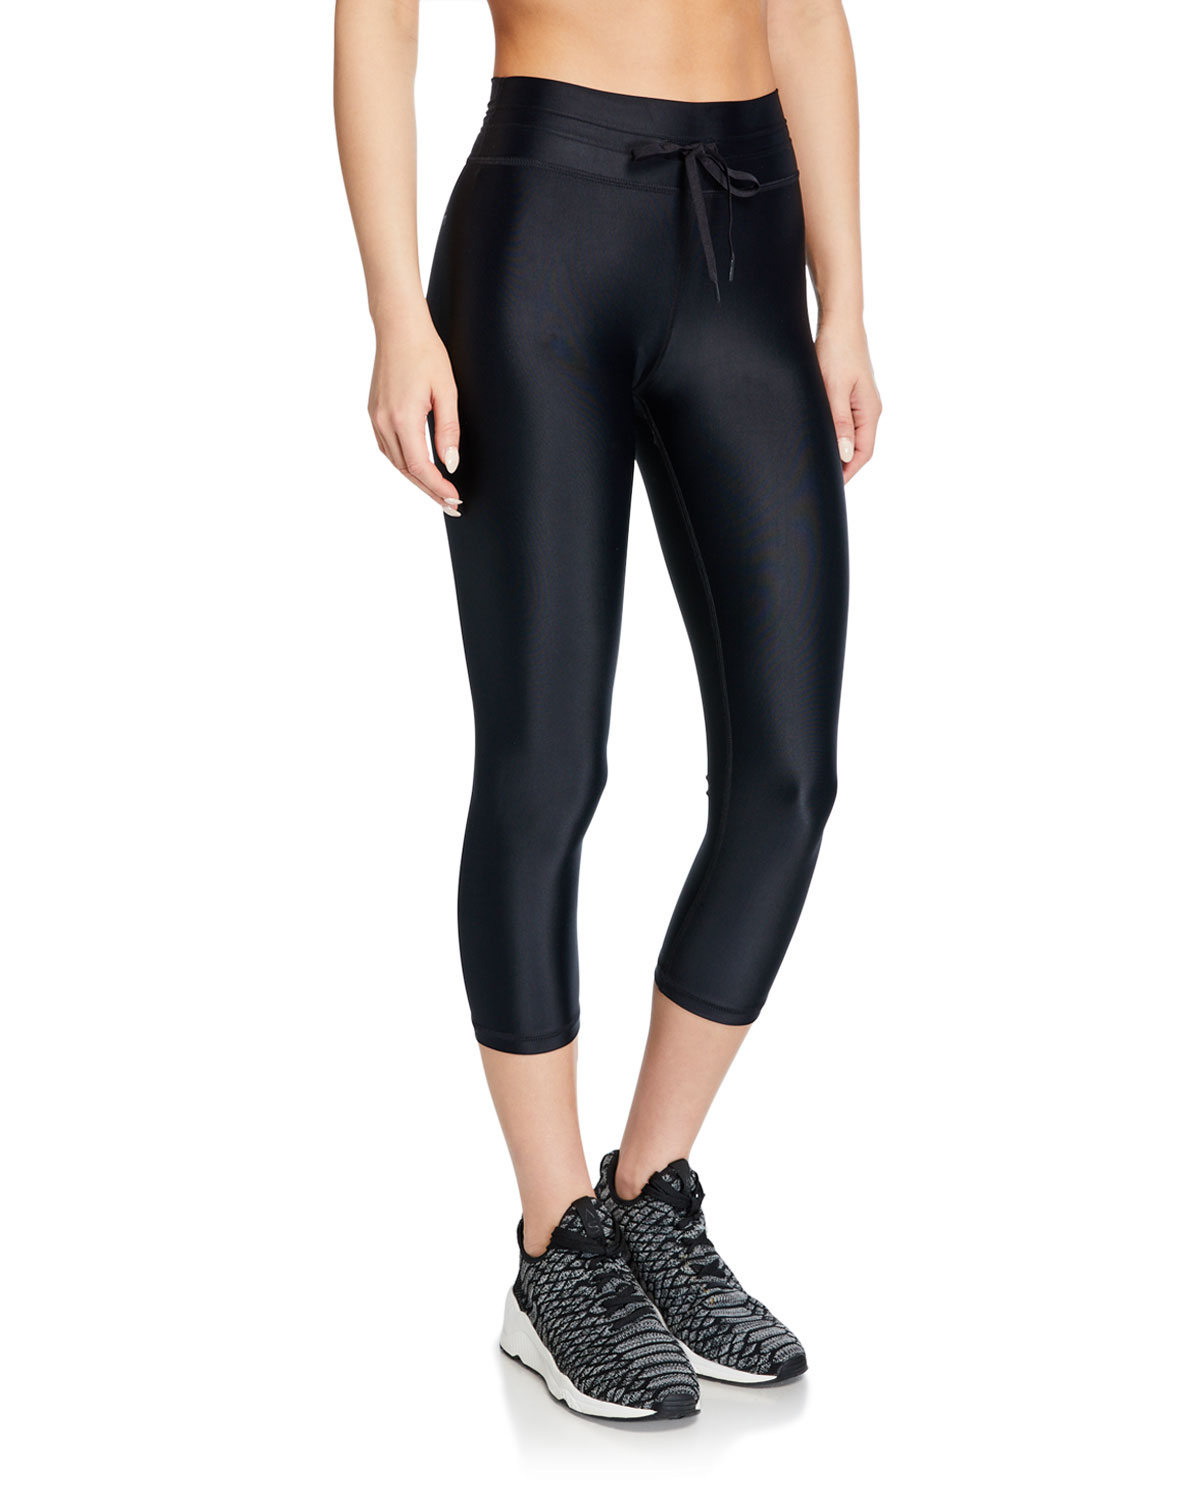 The Upside Pants NYC CROPPED YOGA LEGGINGS